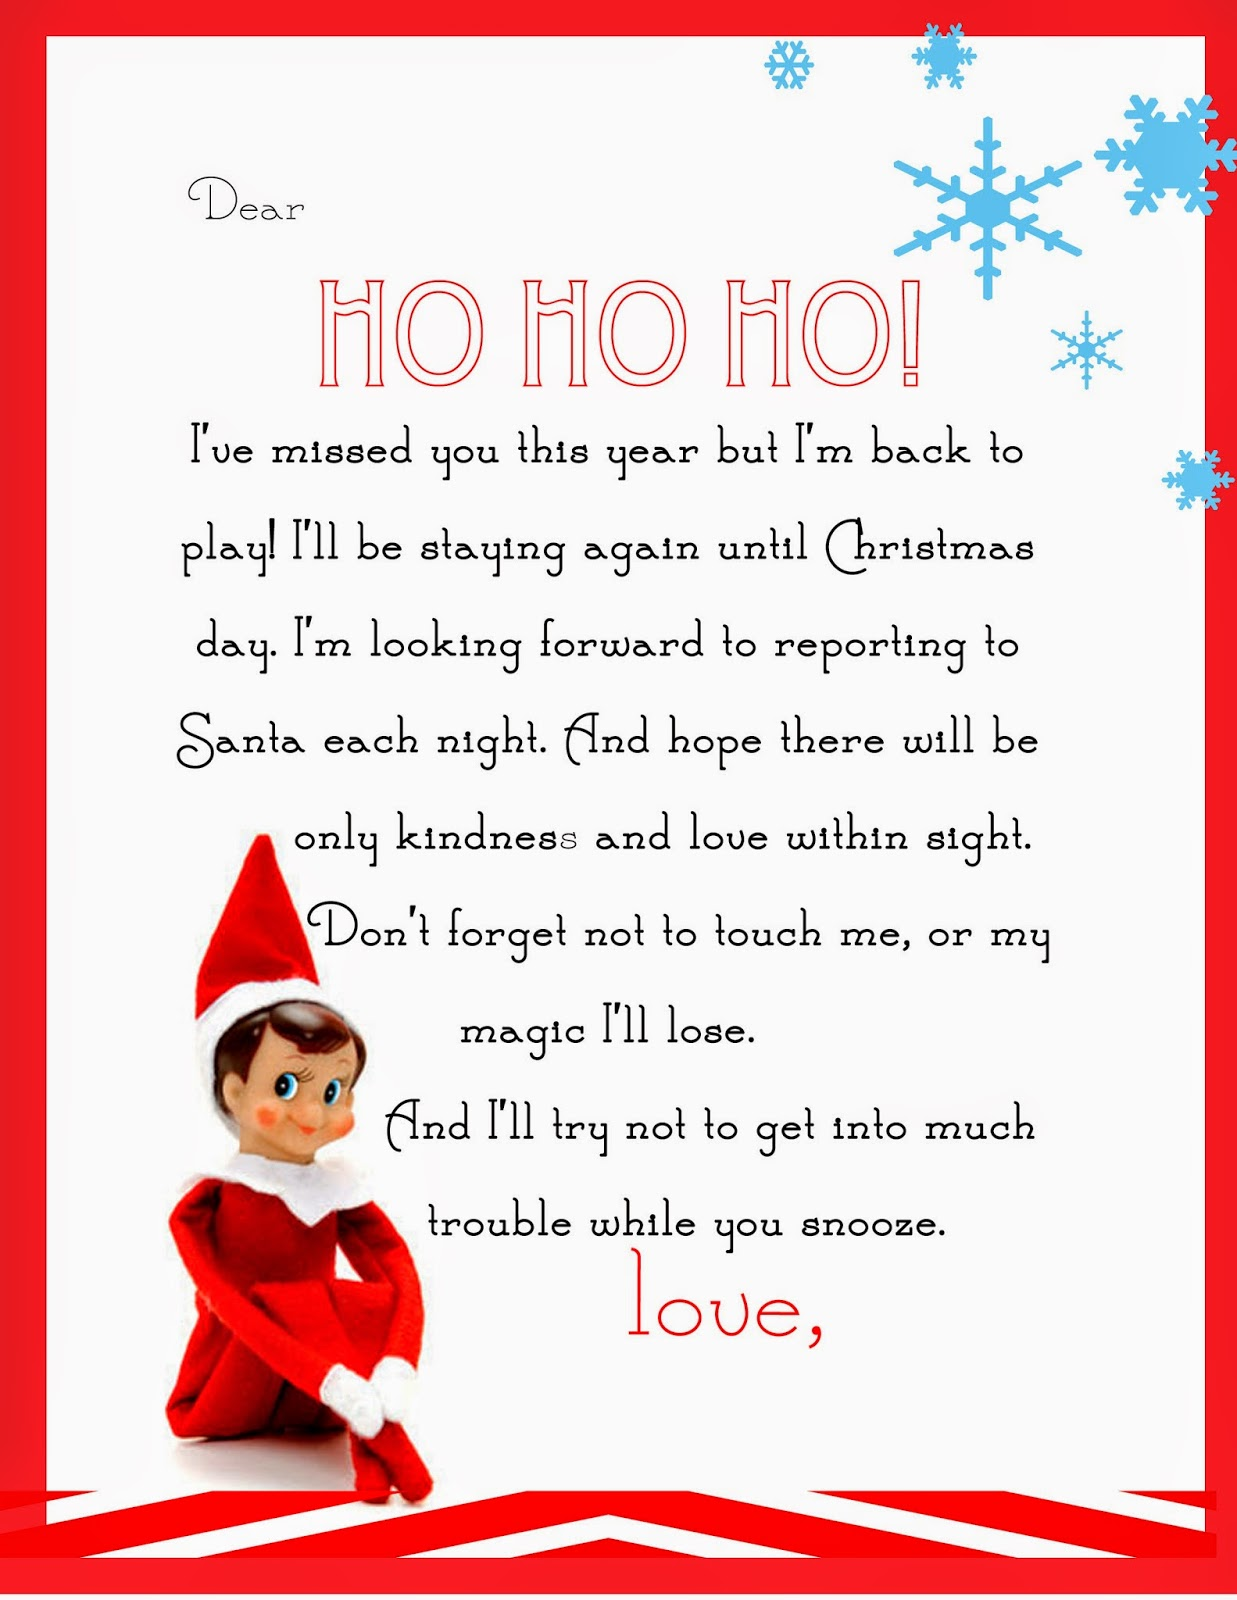 image about Elf on the Shelf Printable identified as Elf upon the Shelf Letter free of charge printable